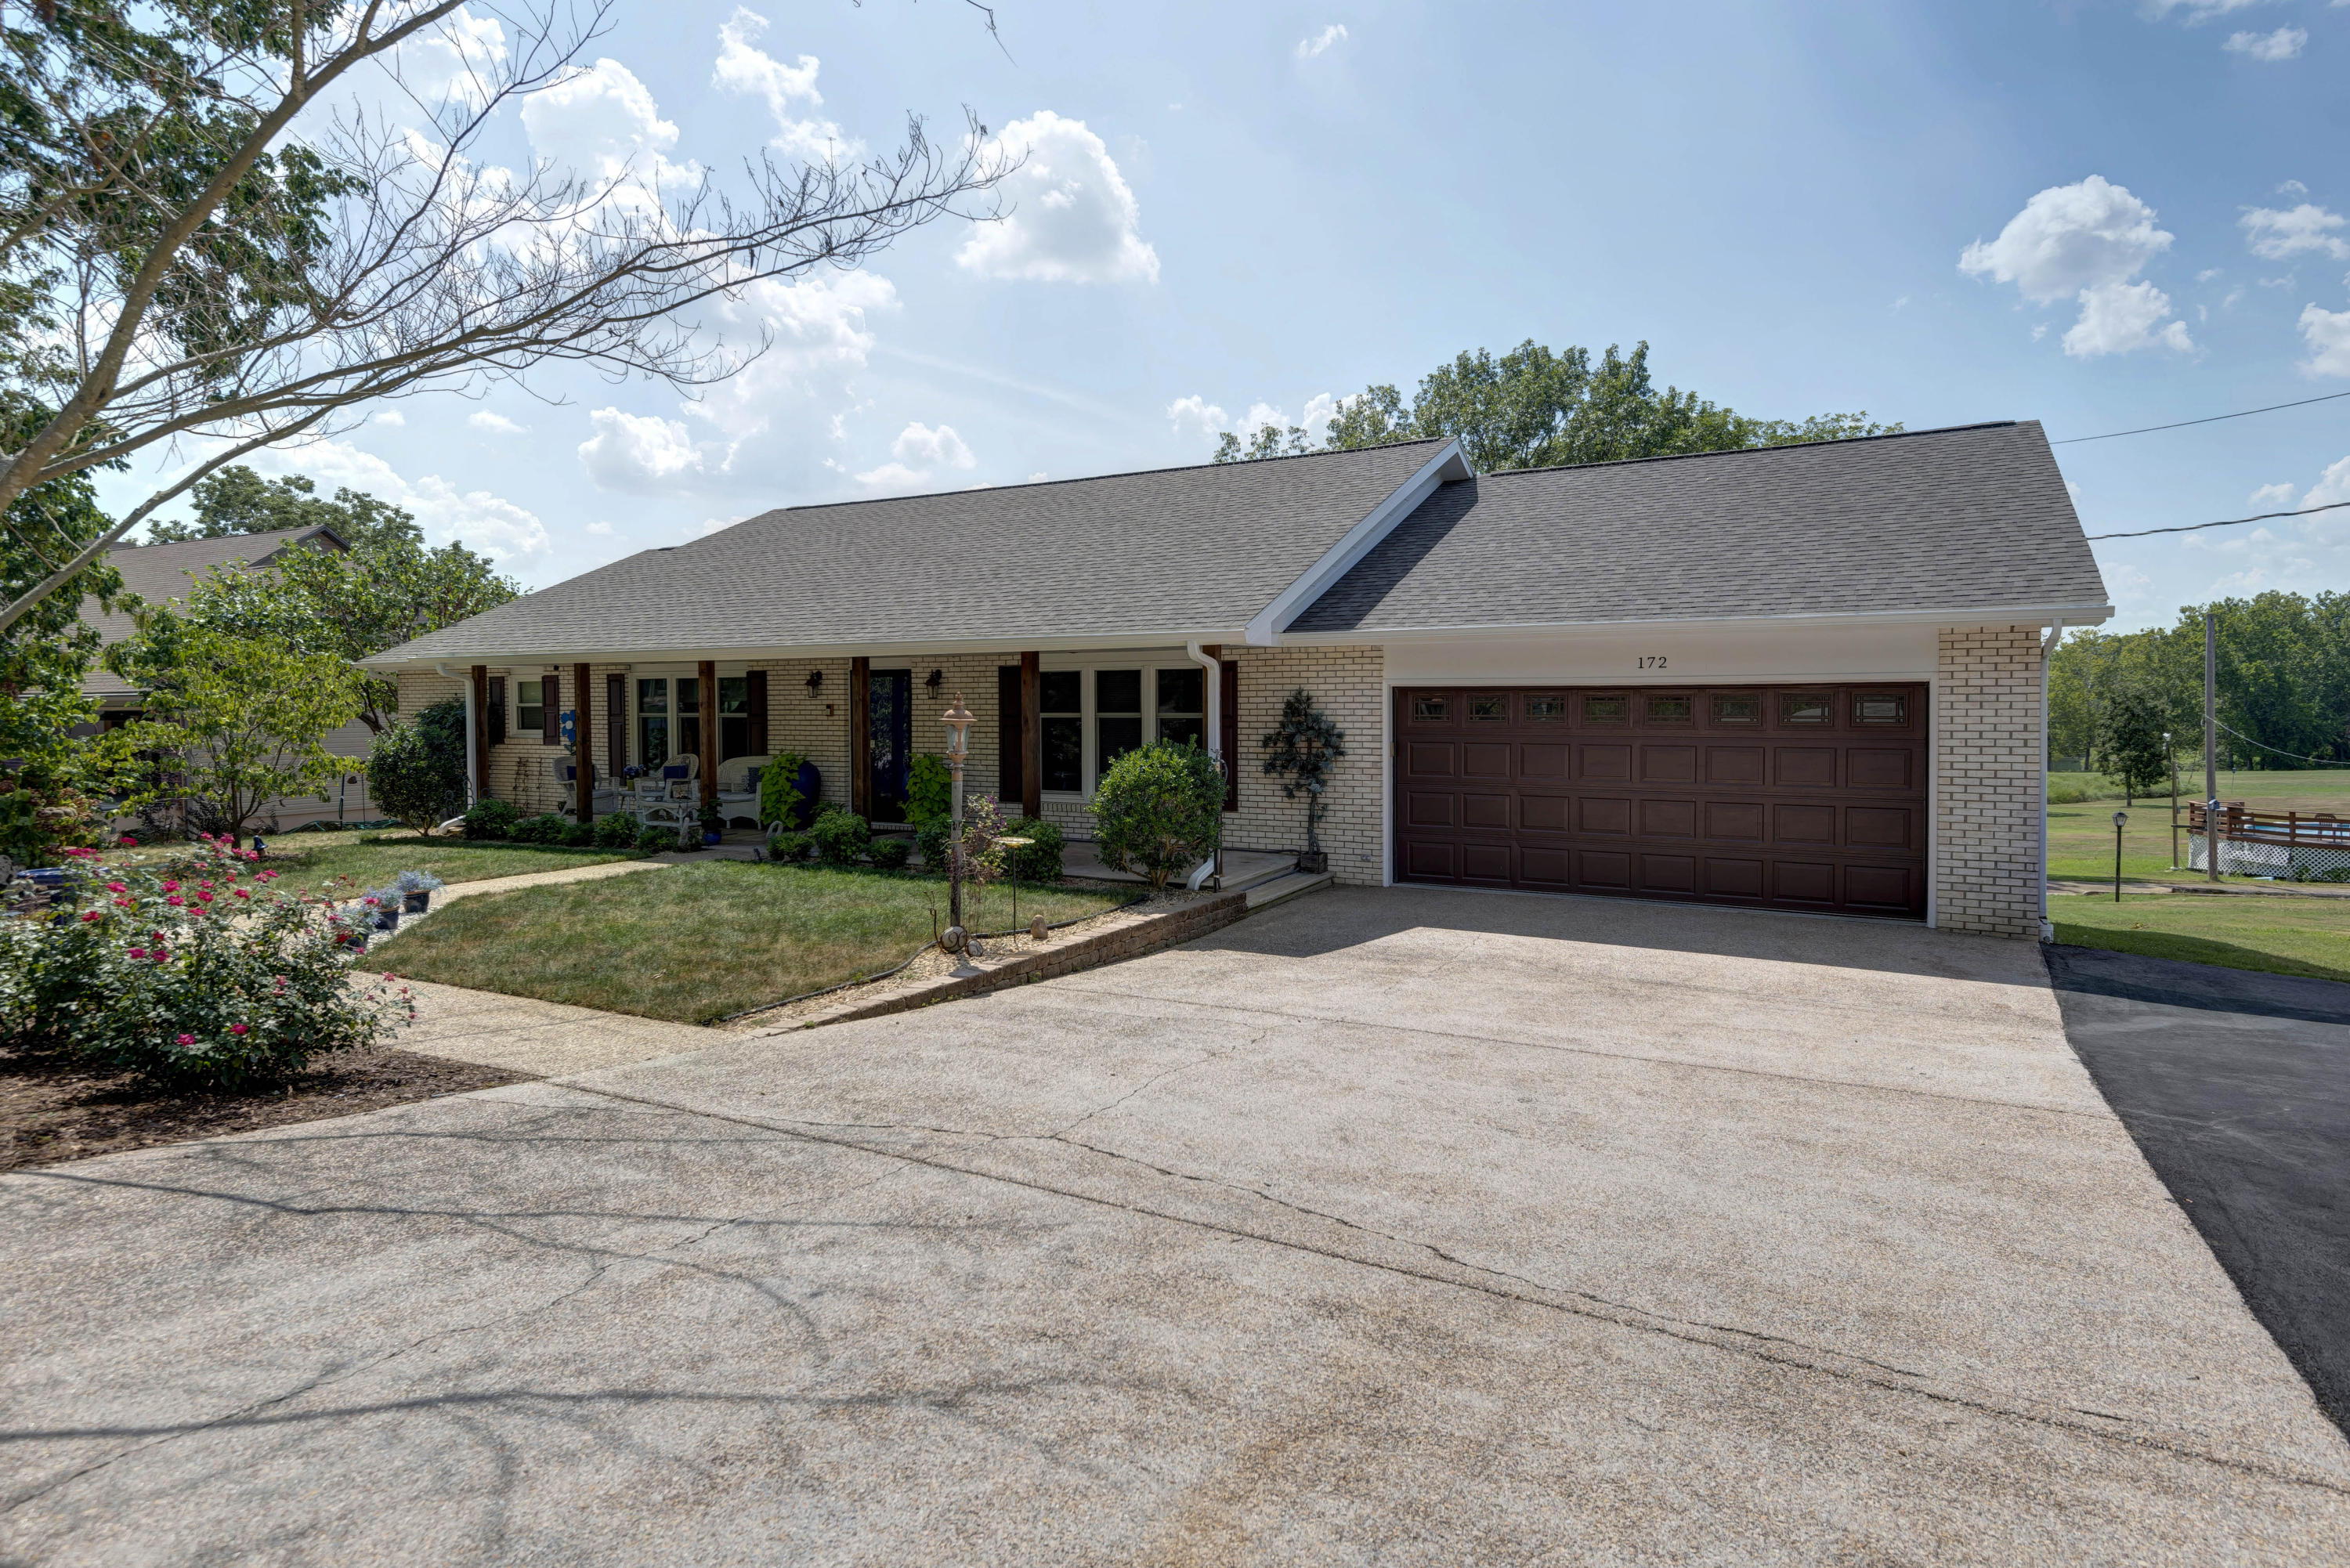 172 Potential Drive Hollister, MO 65672